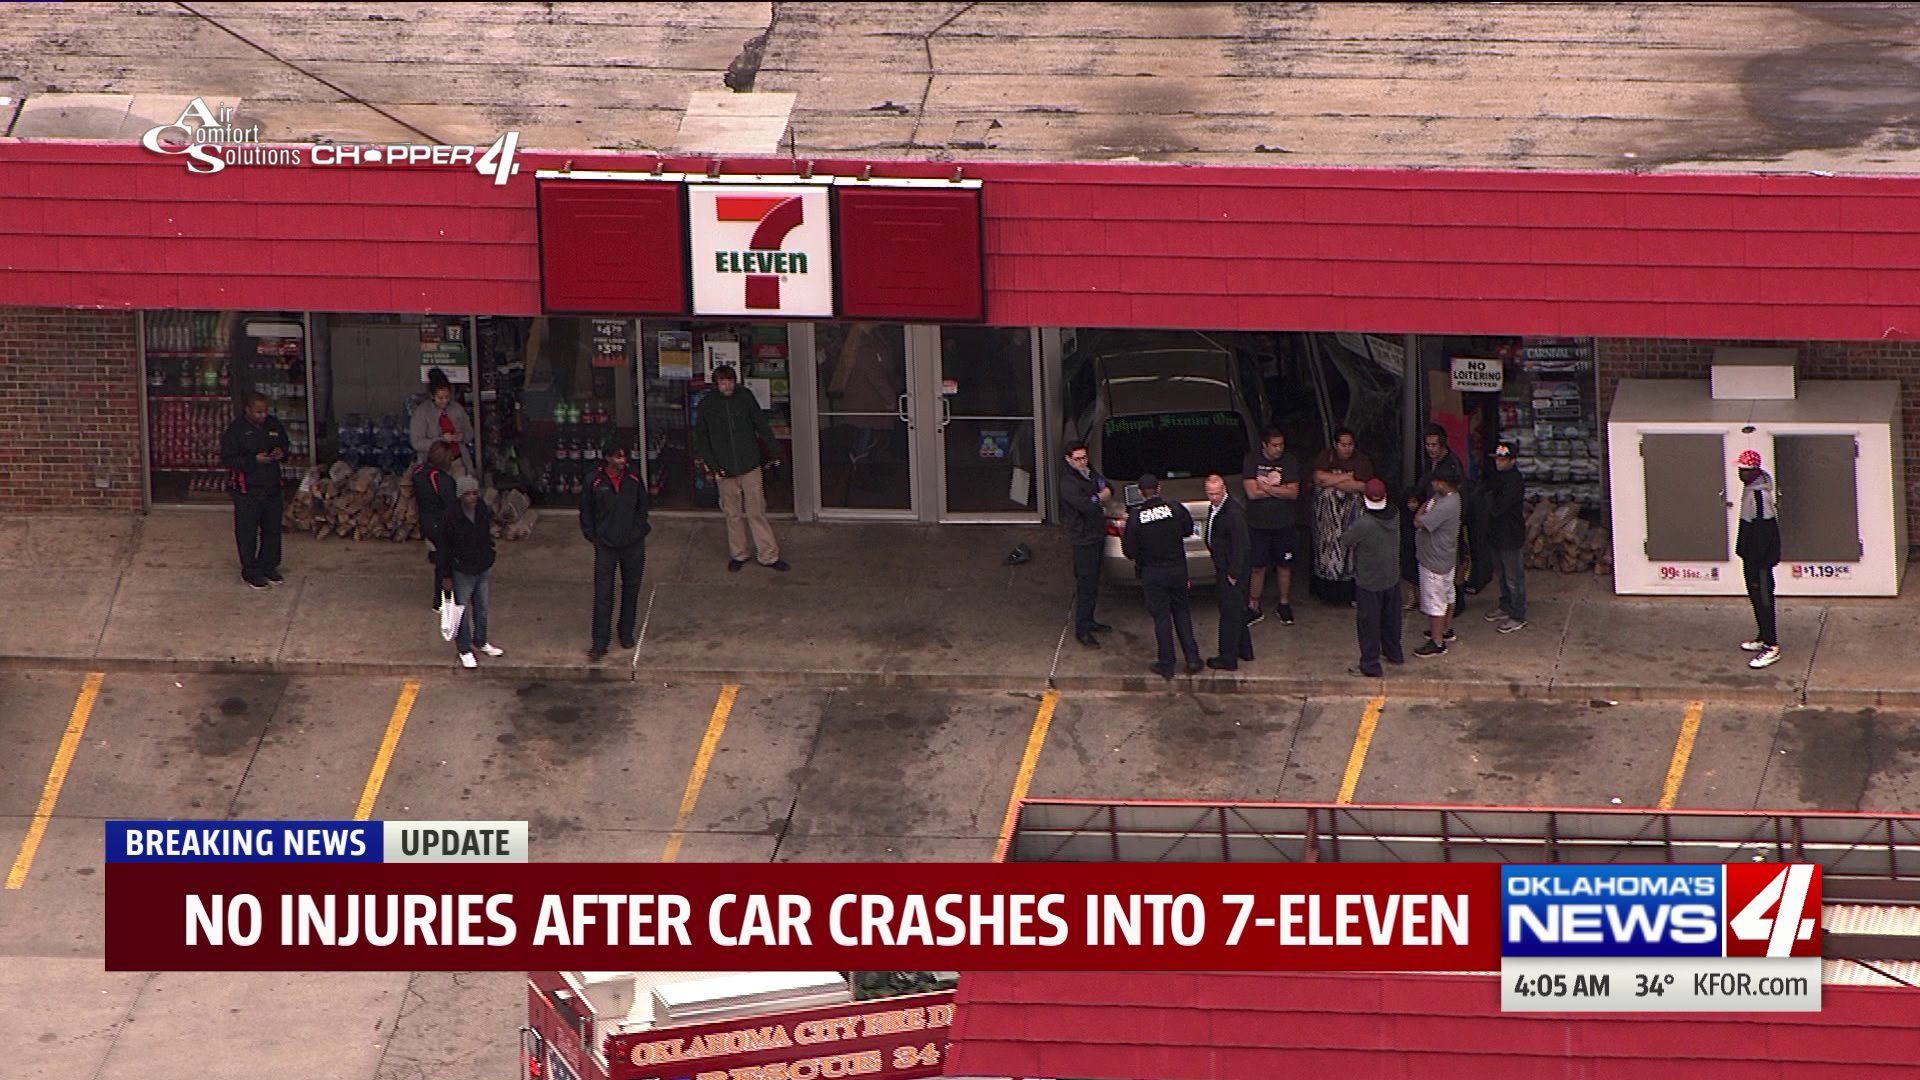 Car crashes into 7-Eleven